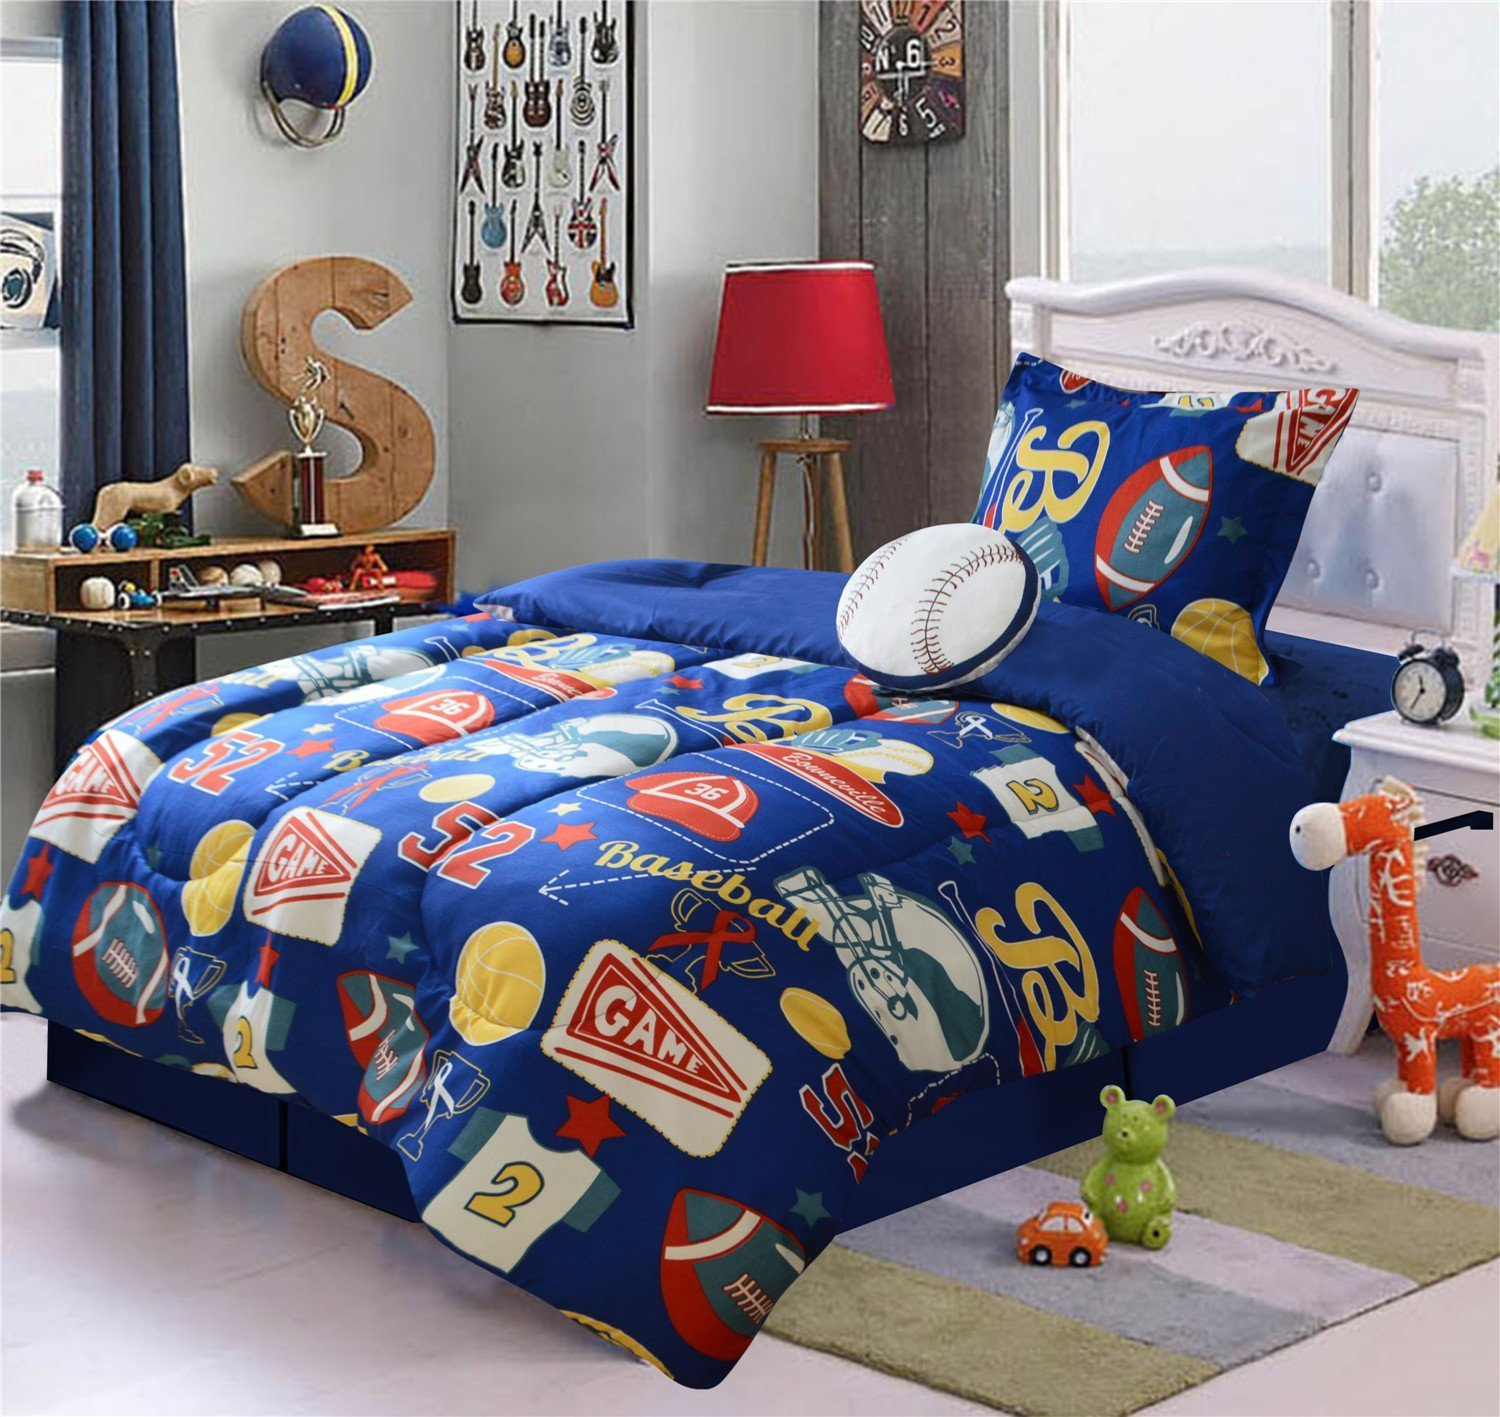 dcb58606 Cheap Football Bed Set, find Football Bed Set deals on line at ...